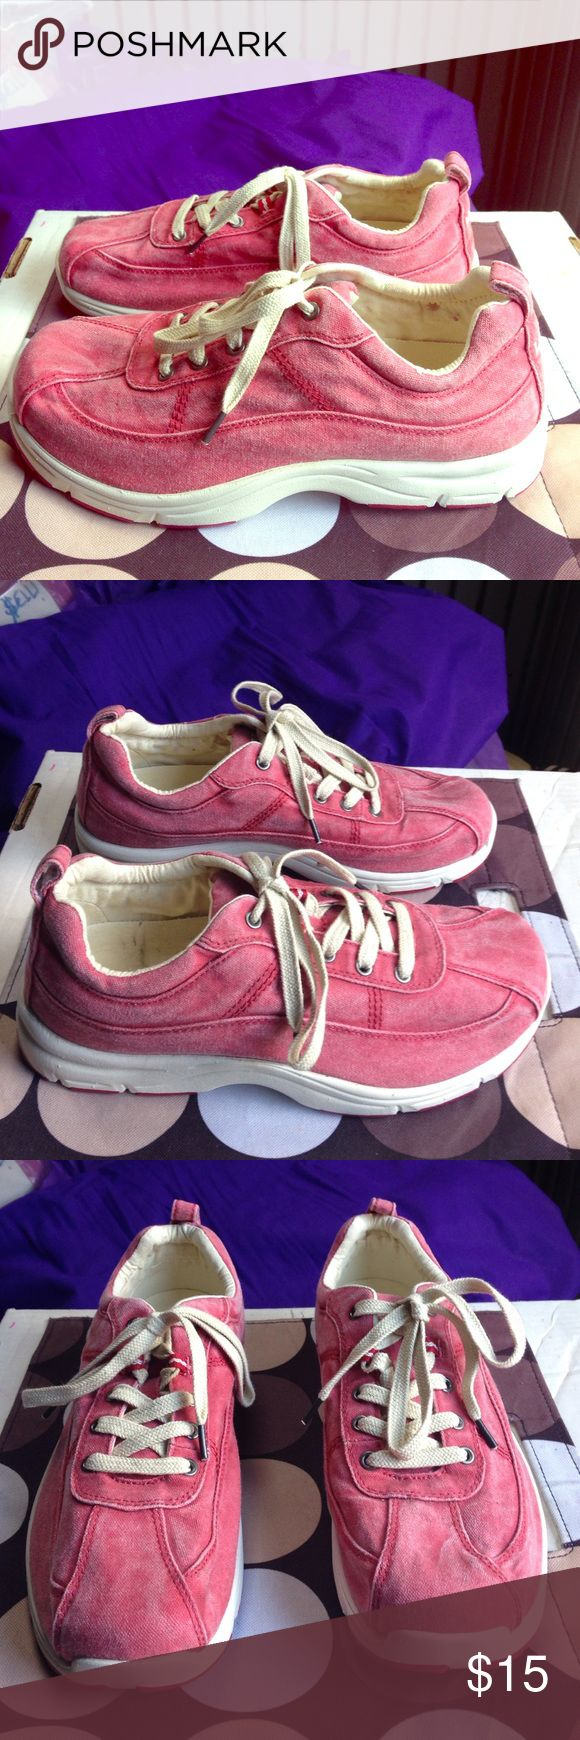 LL BEAN Sunwashed Canvas Sneakers EUC 9 Wide LL BEAN Sunwashed Canvas Sneakers EUC 9 Wide L.L. Bean Shoes Sneakers